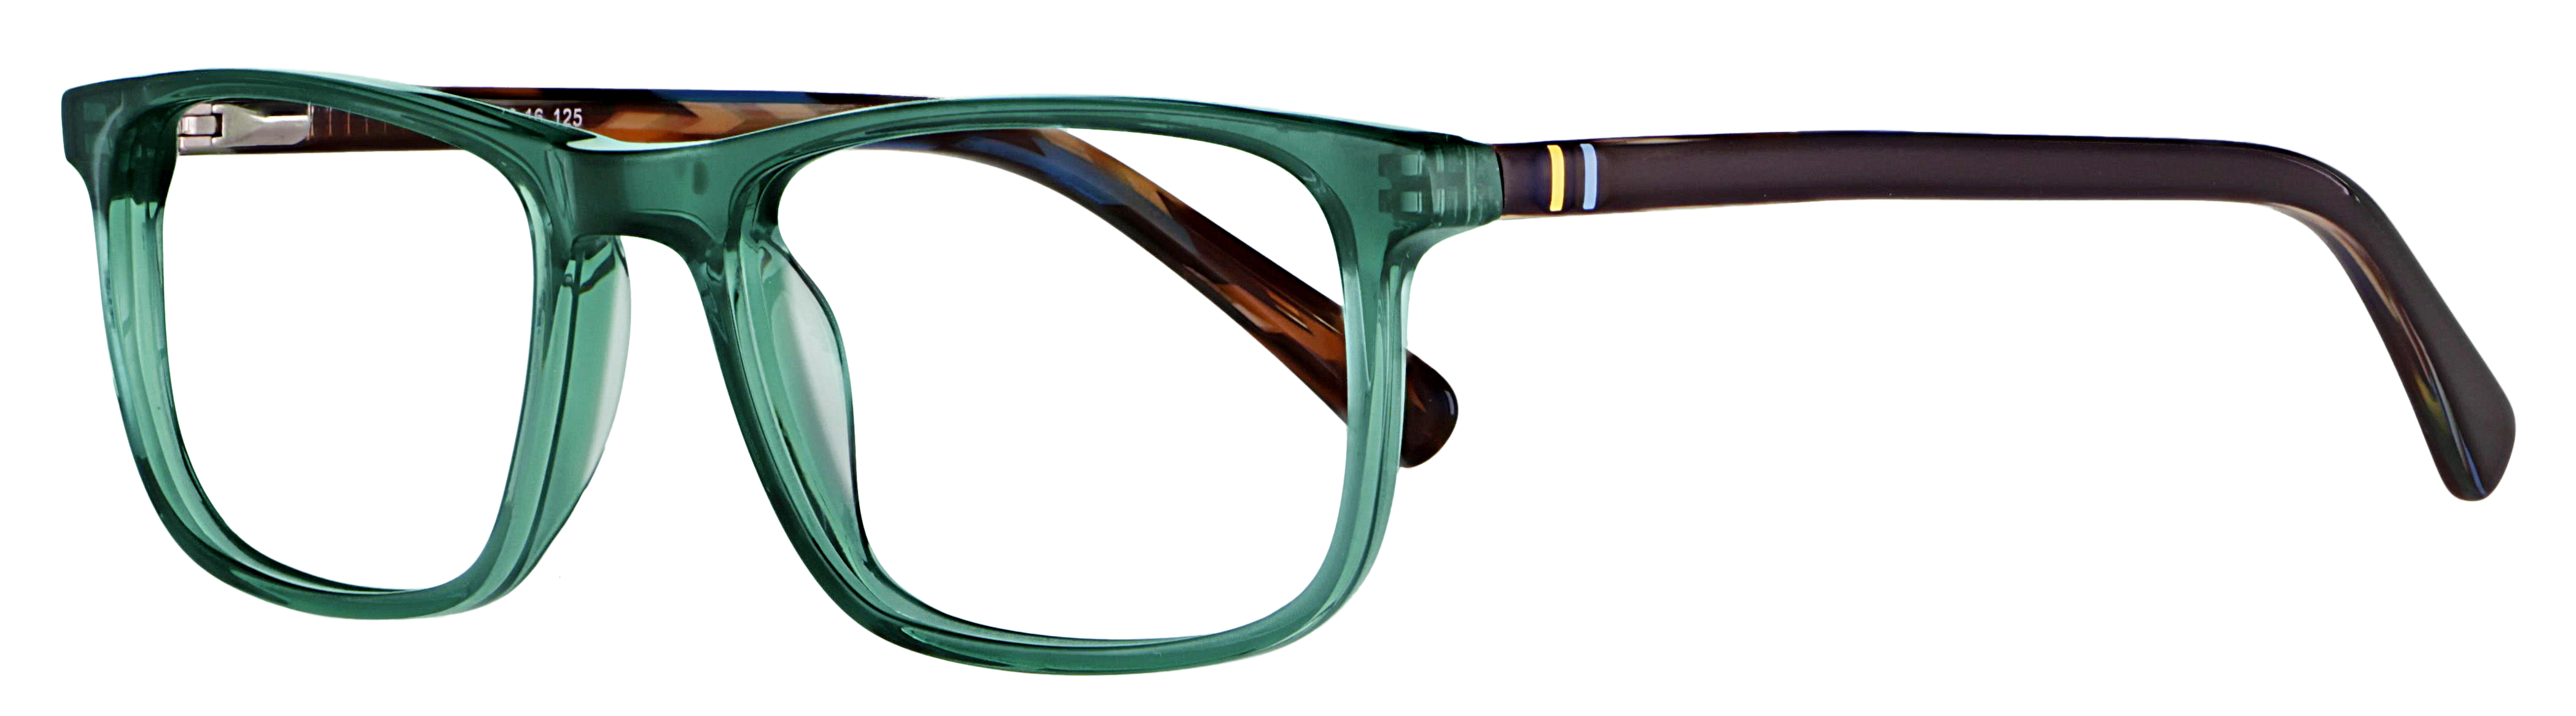 abele optik Kinderbrille 140321